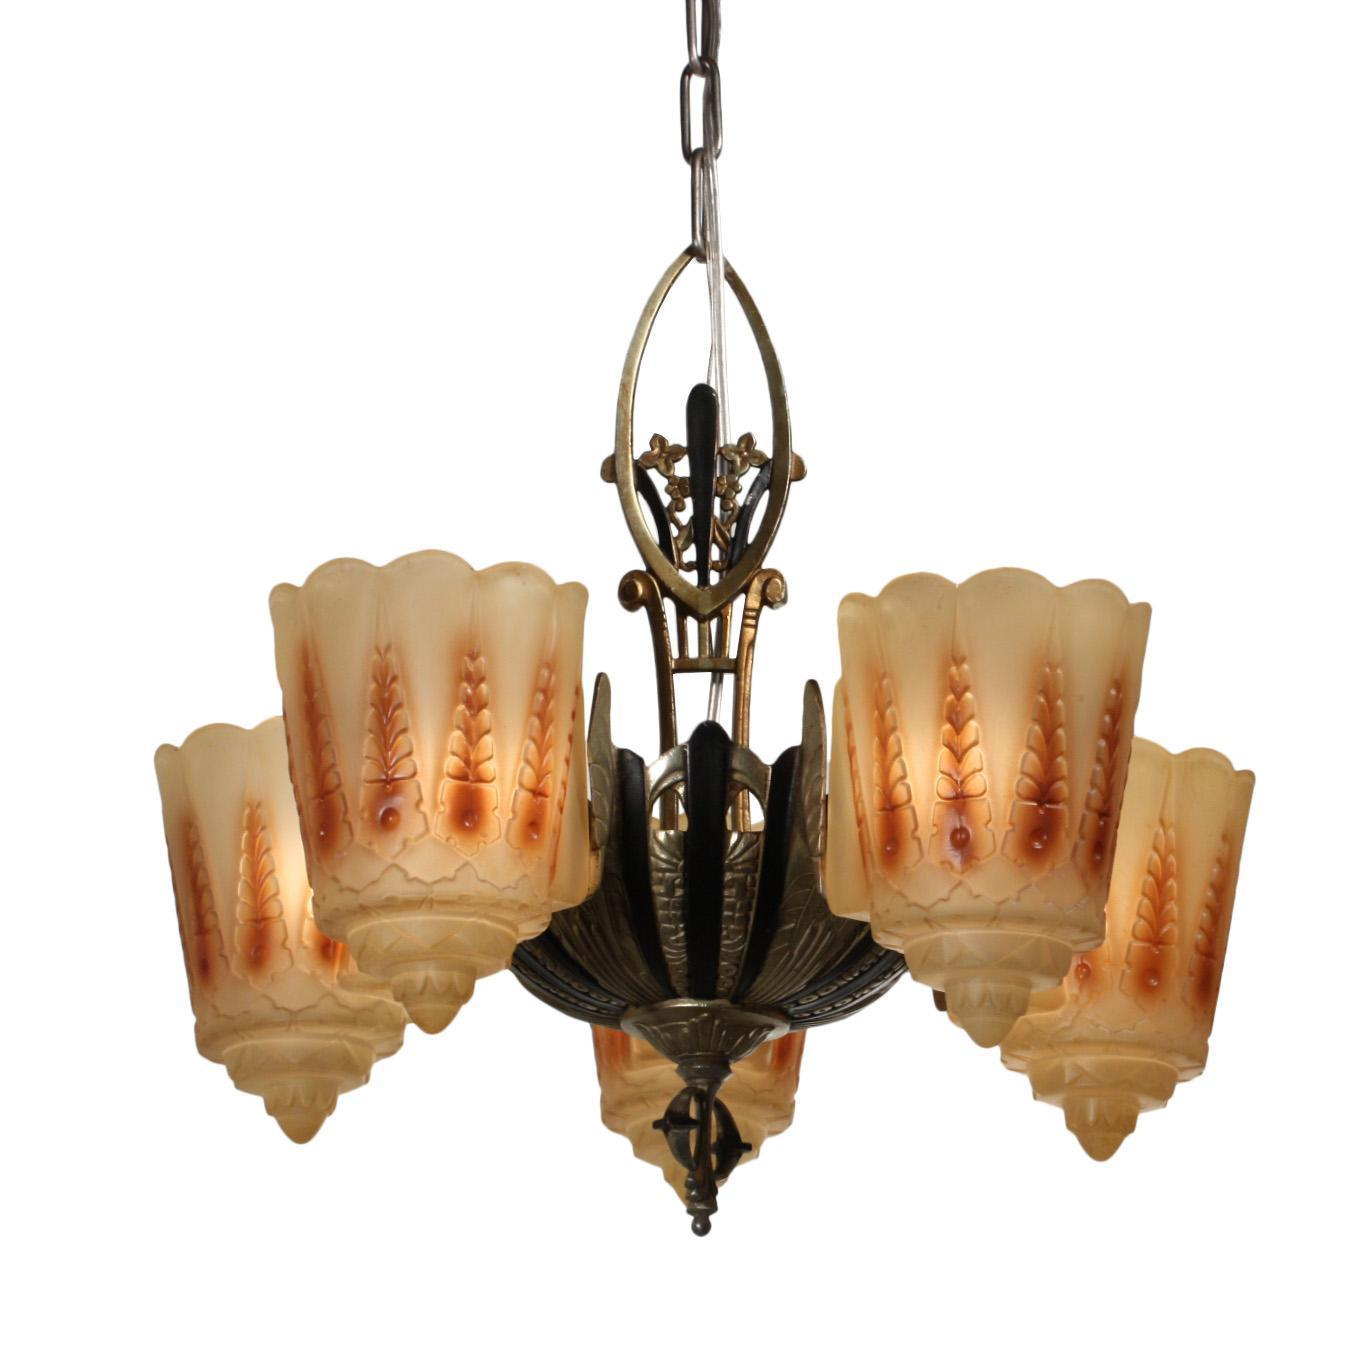 Antique Art Deco Slip Shade Chandelier by Lincoln, c.1920